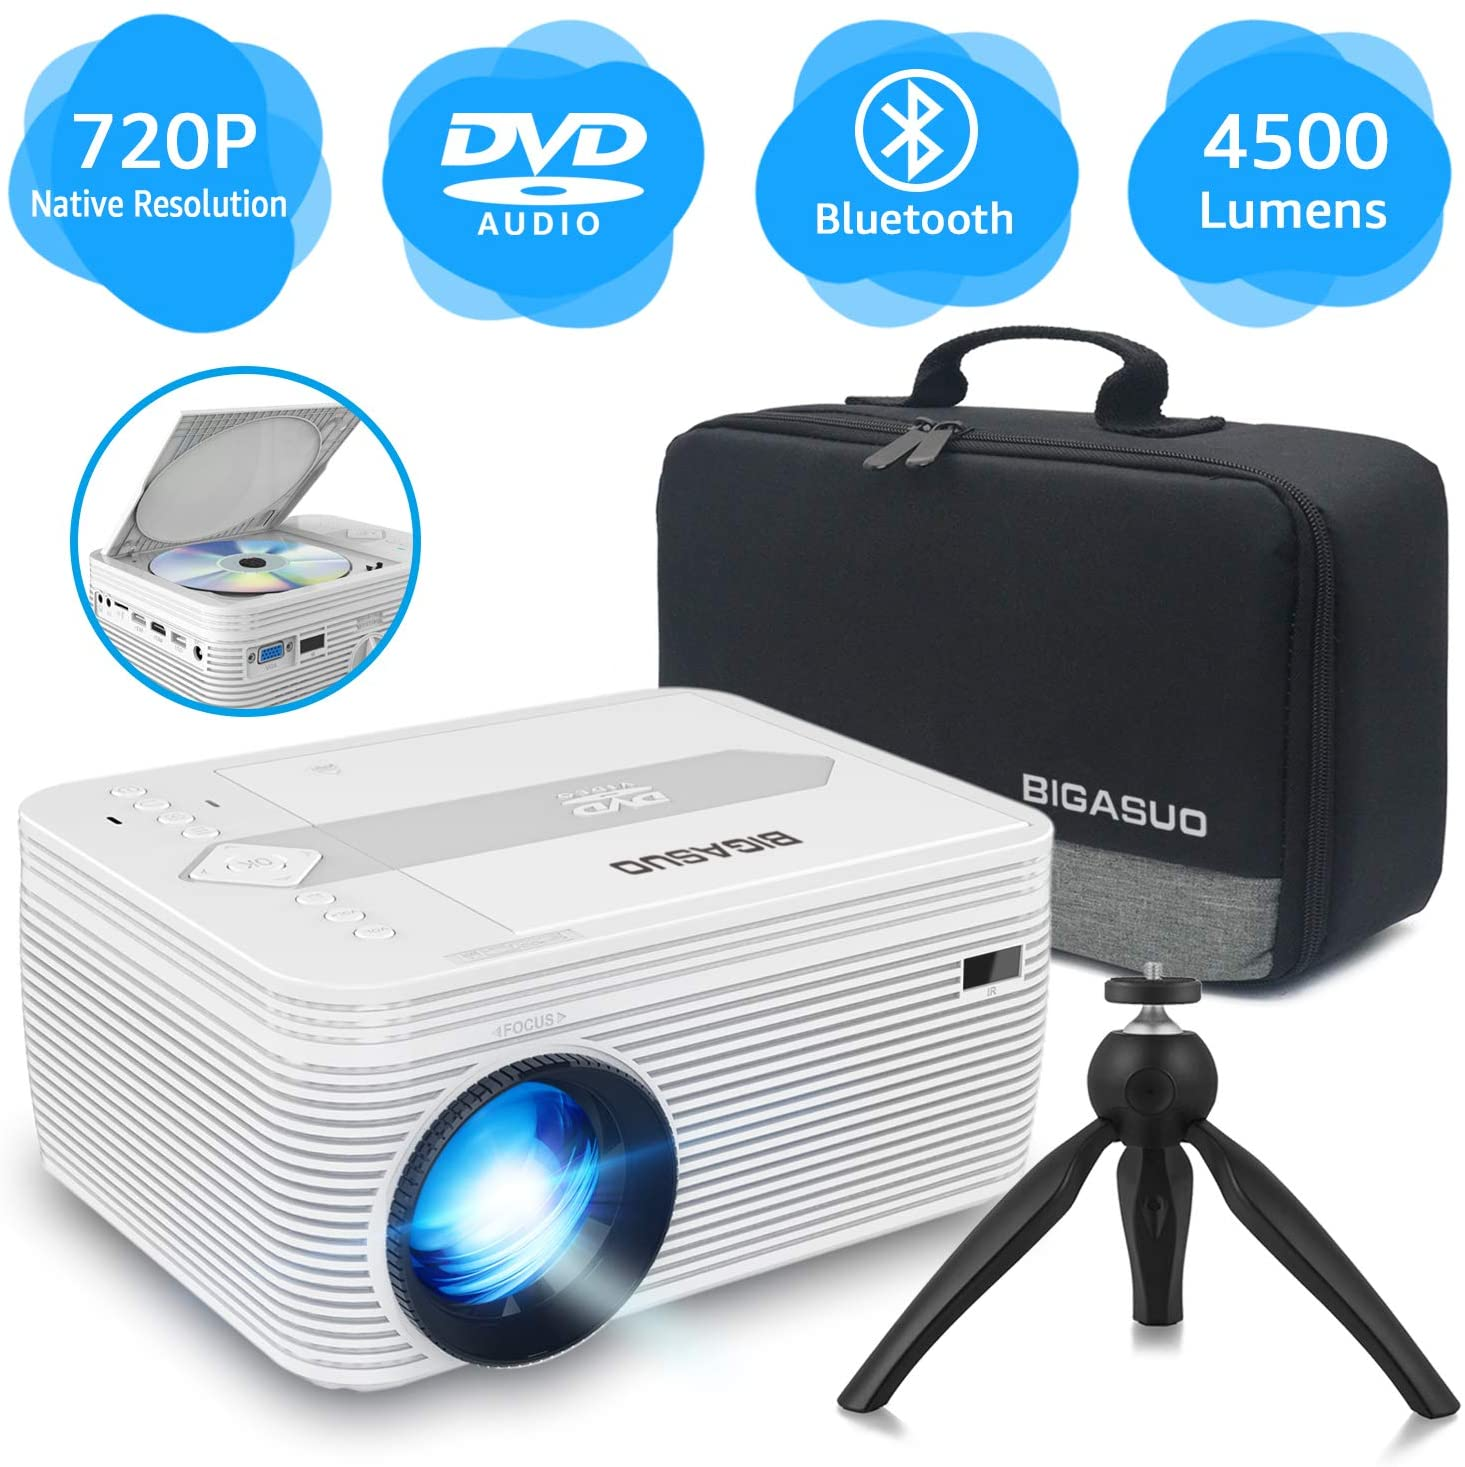 [2020 Upgrade] Bluetooth Full HD Projector Built in DVD Player, Portable Mini Projector 4500 Lumens Compatible with iPhone/iPad/TV/HDMI/VGA/AV/USB/TF SD Card, 720P Native 1080P Supported